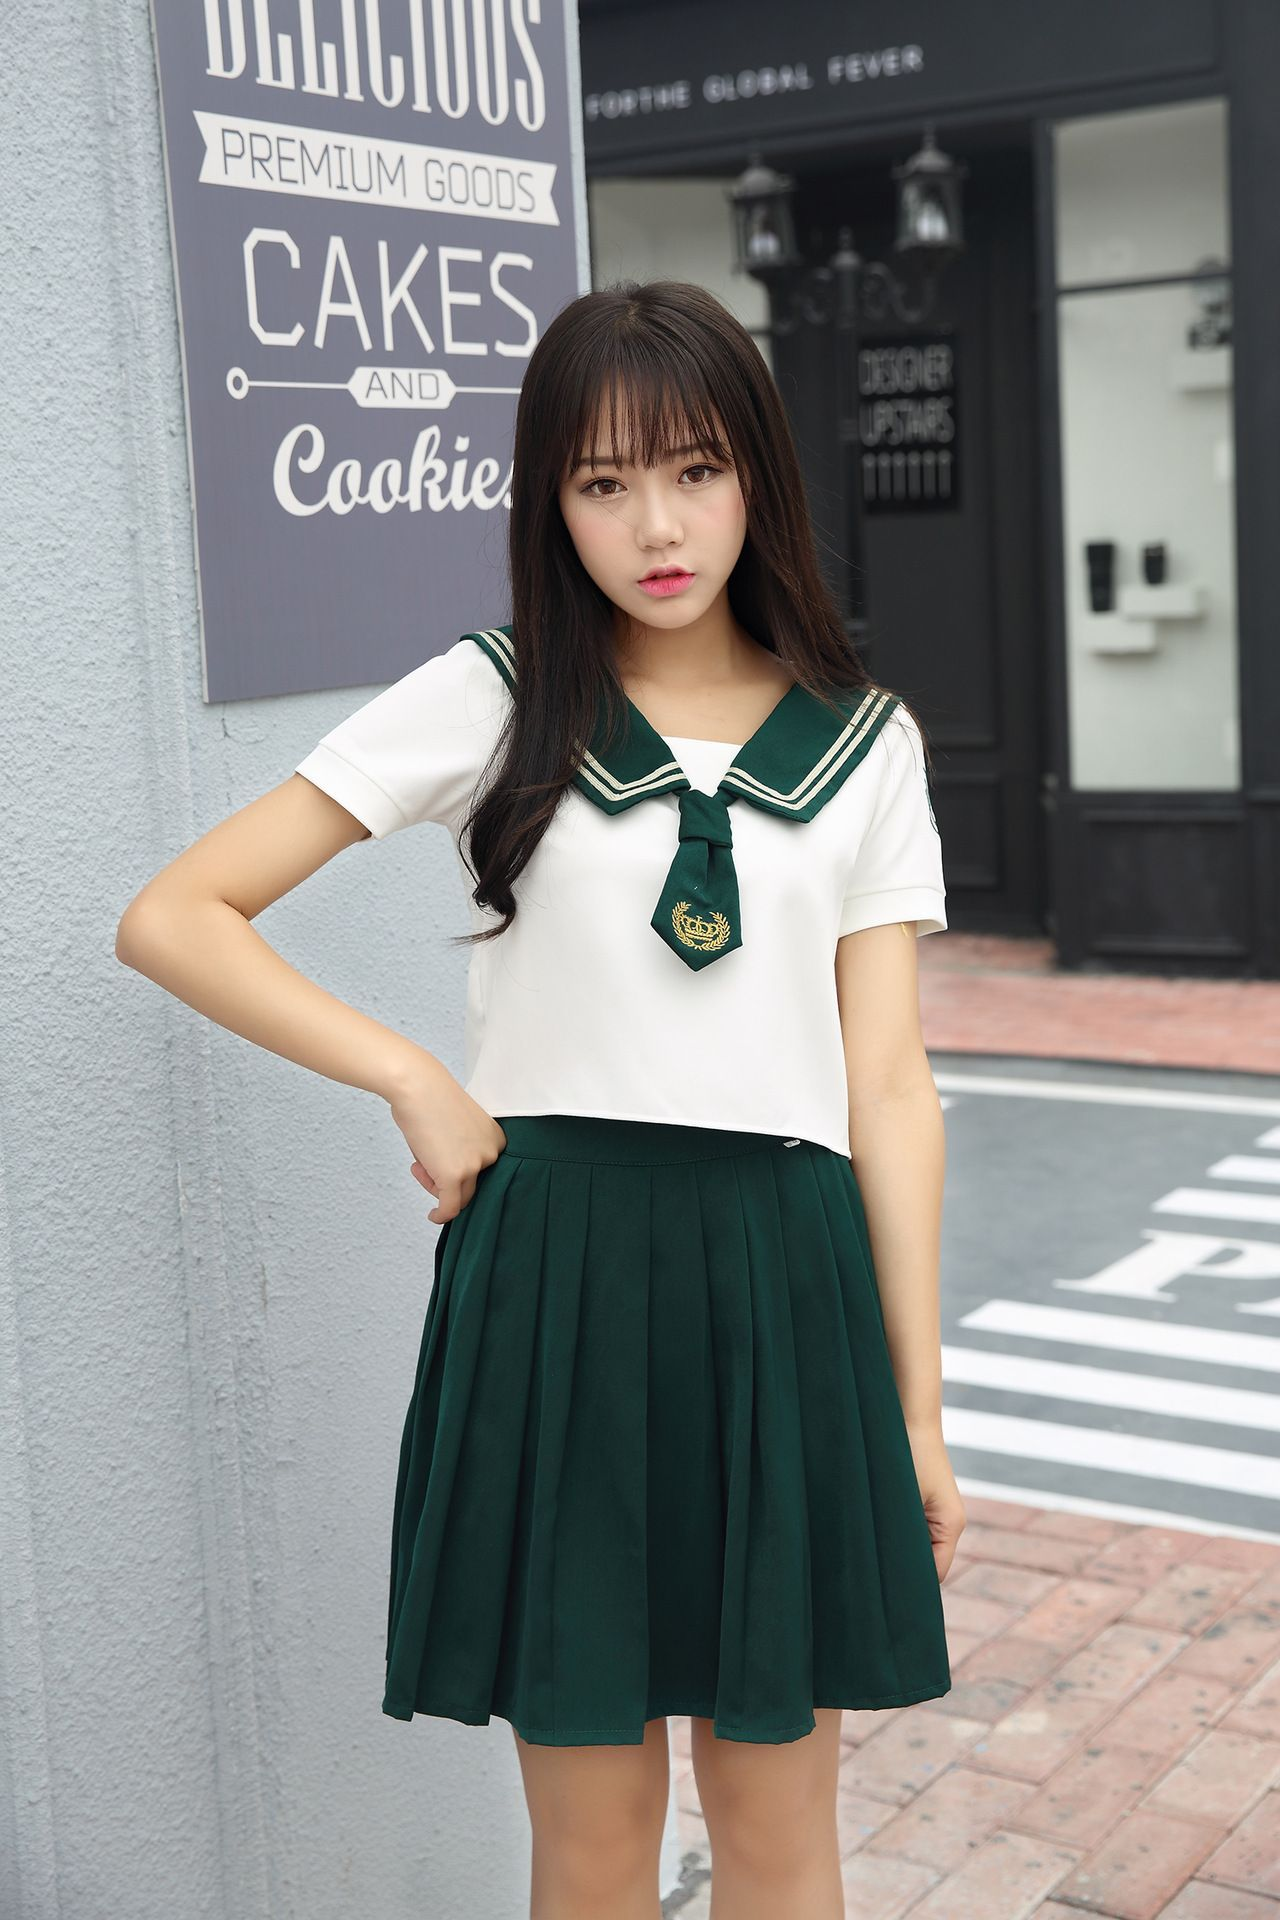 Cute School Uniforms, Girls Uniforms, School Uniform Girls, School Wear,  School Girl